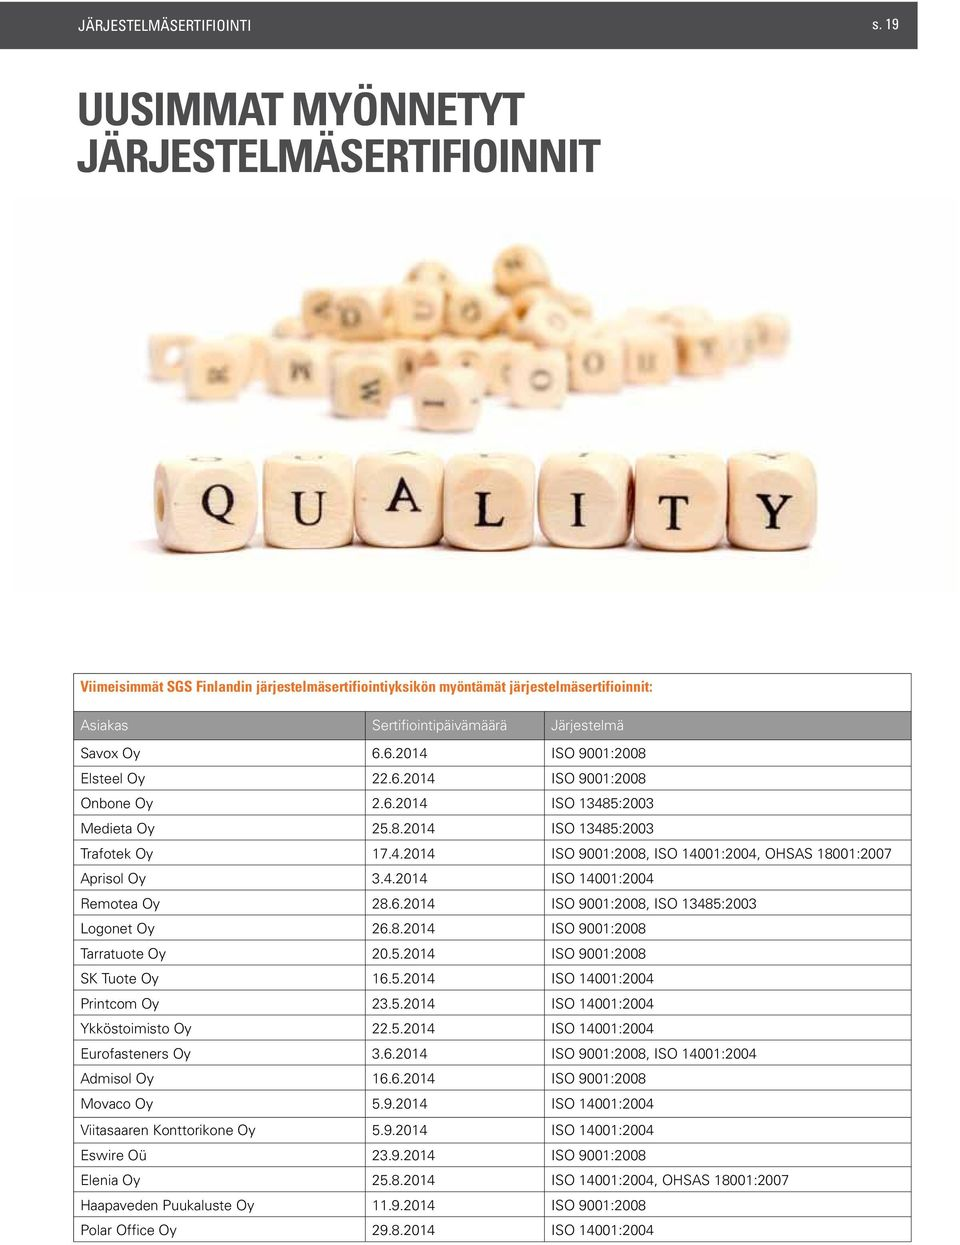 6.2014 ISO 9001:2008 Elsteel Oy 22.6.2014 ISO 9001:2008 Onbone Oy 2.6.2014 ISO 13485:2003 Medieta Oy 25.8.2014 ISO 13485:2003 Trafotek Oy 17.4.2014 ISO 9001:2008, ISO 14001:2004, OHSAS 18001:2007 Aprisol Oy 3.